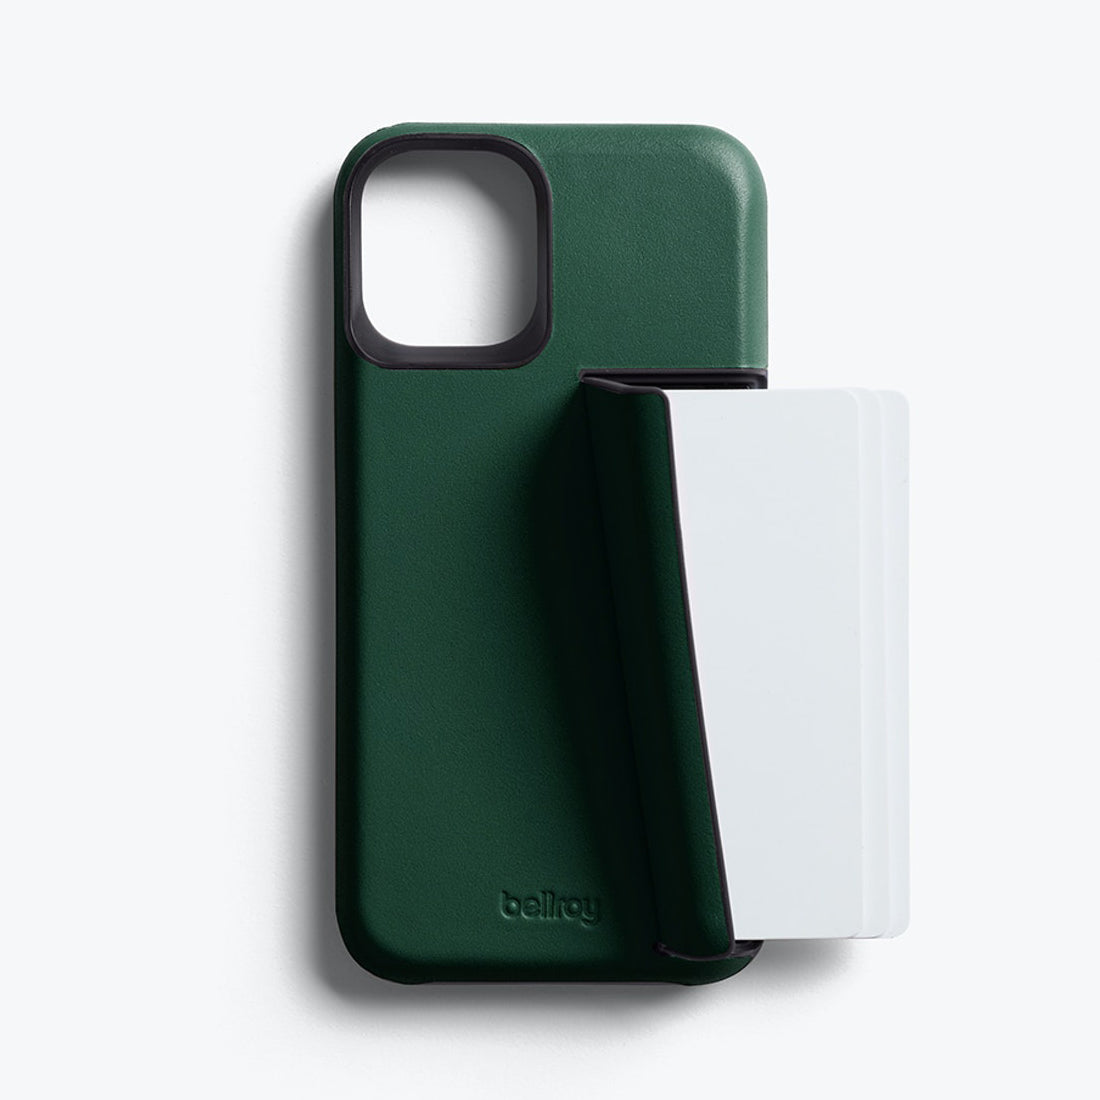 Bellroy 3-Card Genuine Leather Wallet Case For iPhone iPhone 12 mini - RACING GREEN